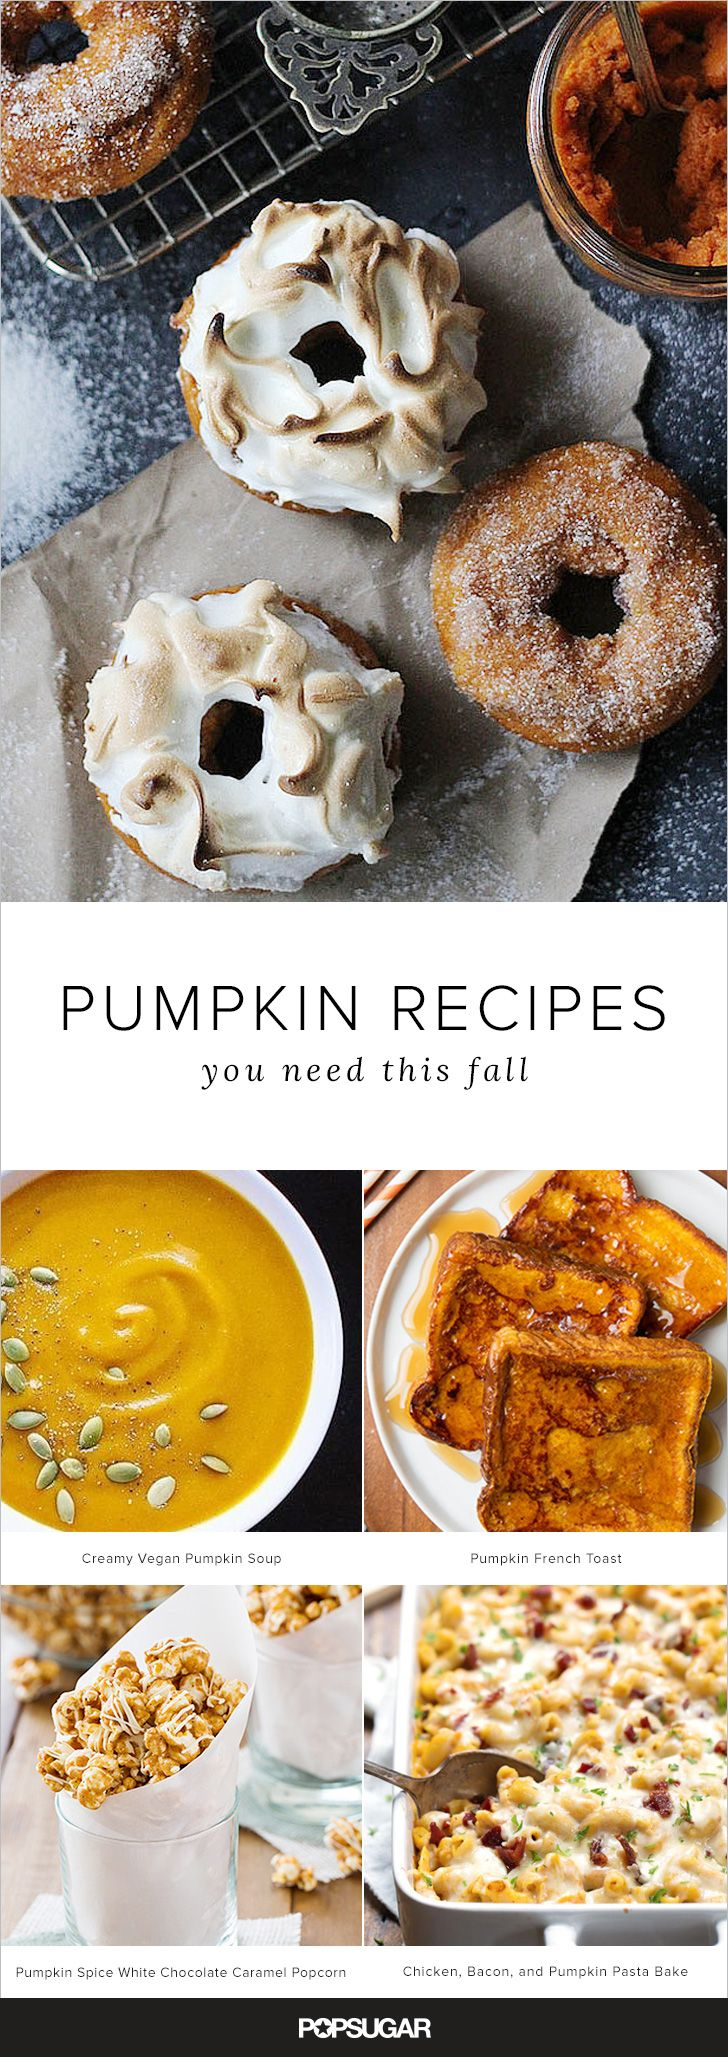 All of the pumpkin recipes 111 to be exact you need